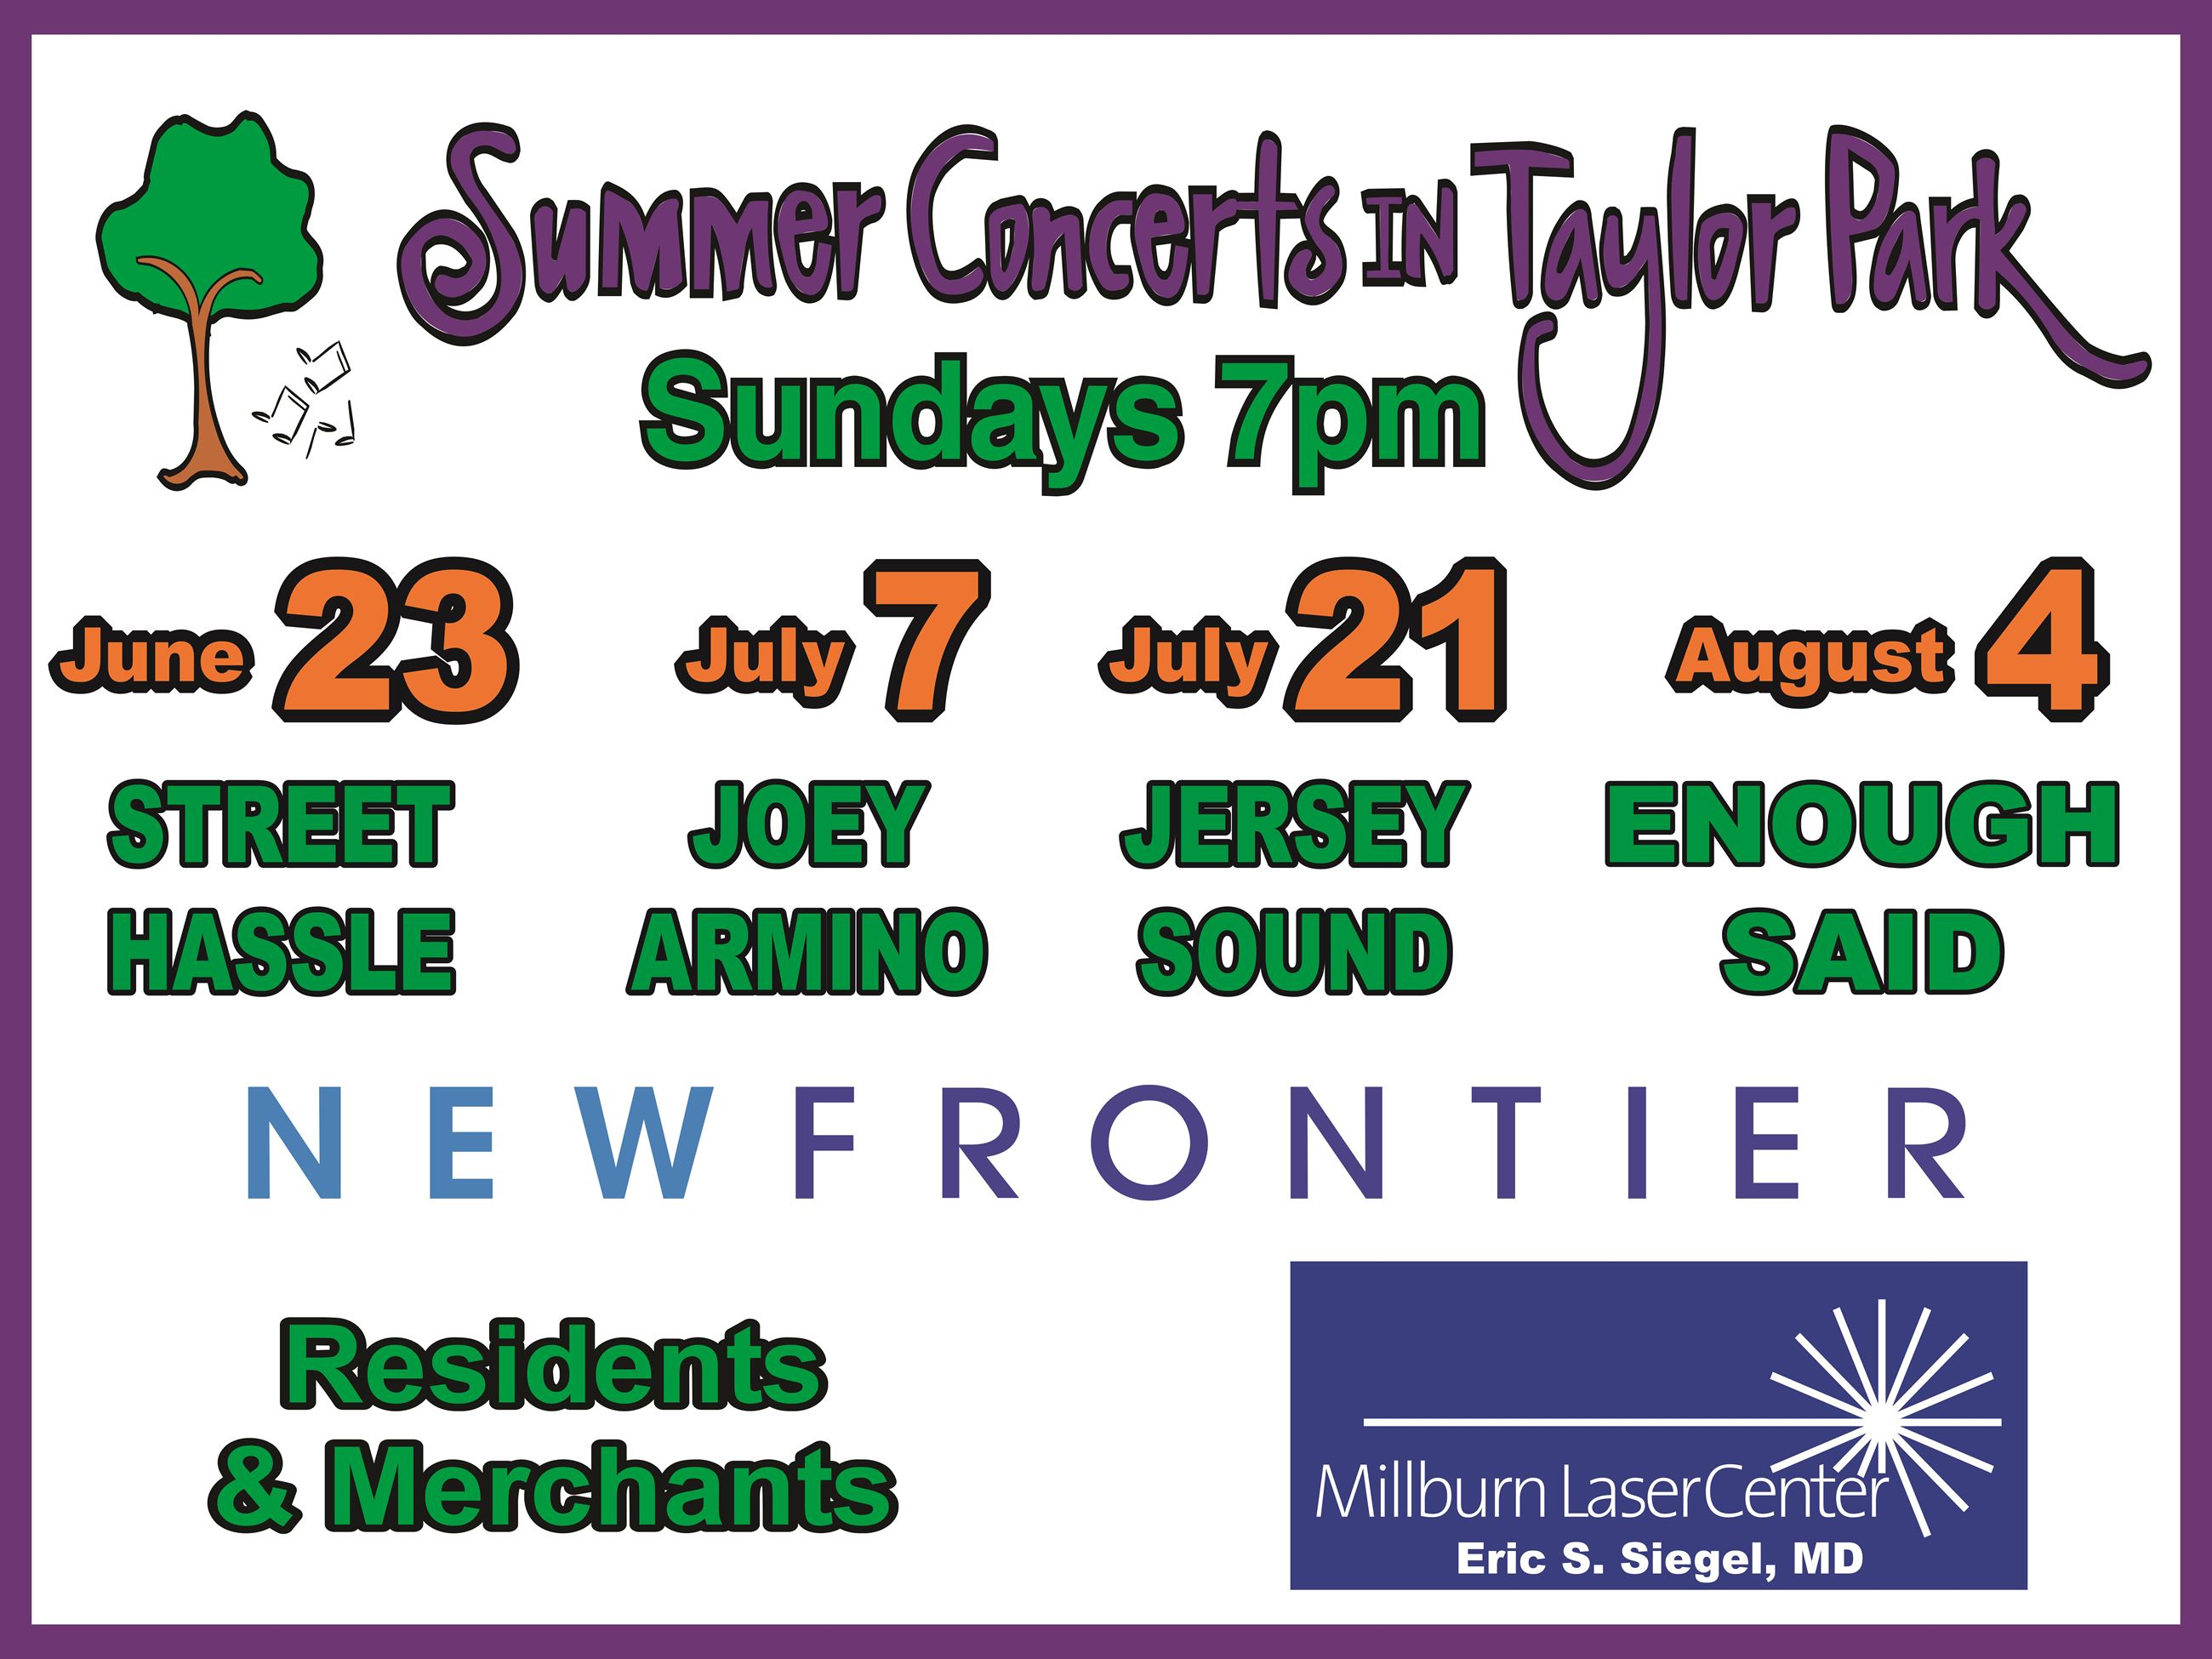 Summer Concerts in Taylor Park Lineup Poster 2019